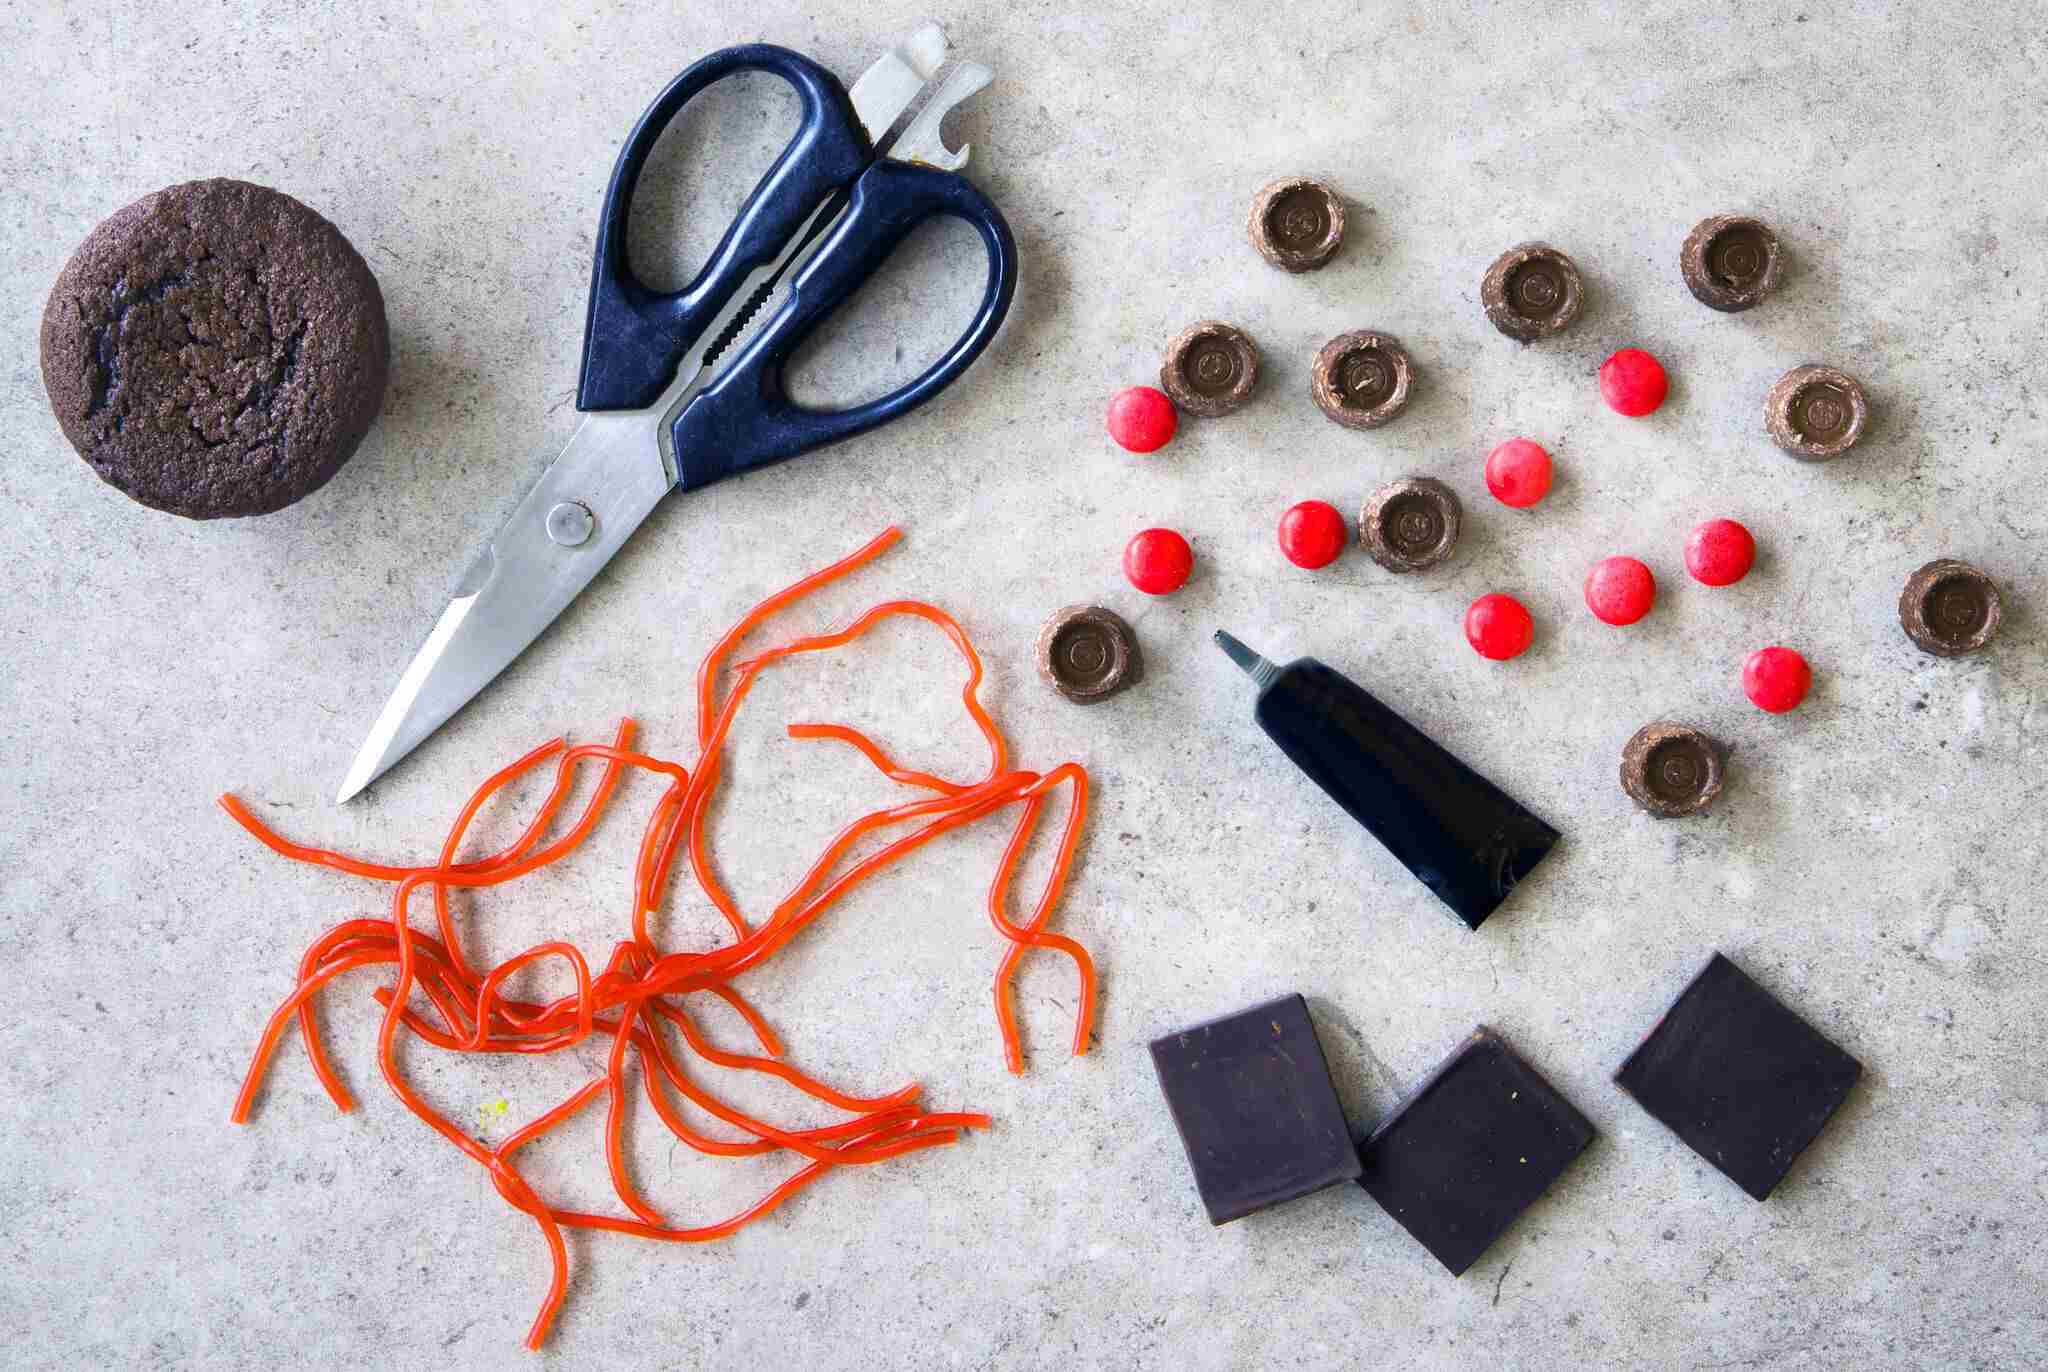 Ingredients to make graduation cap cupcakes are gathered on a work surface